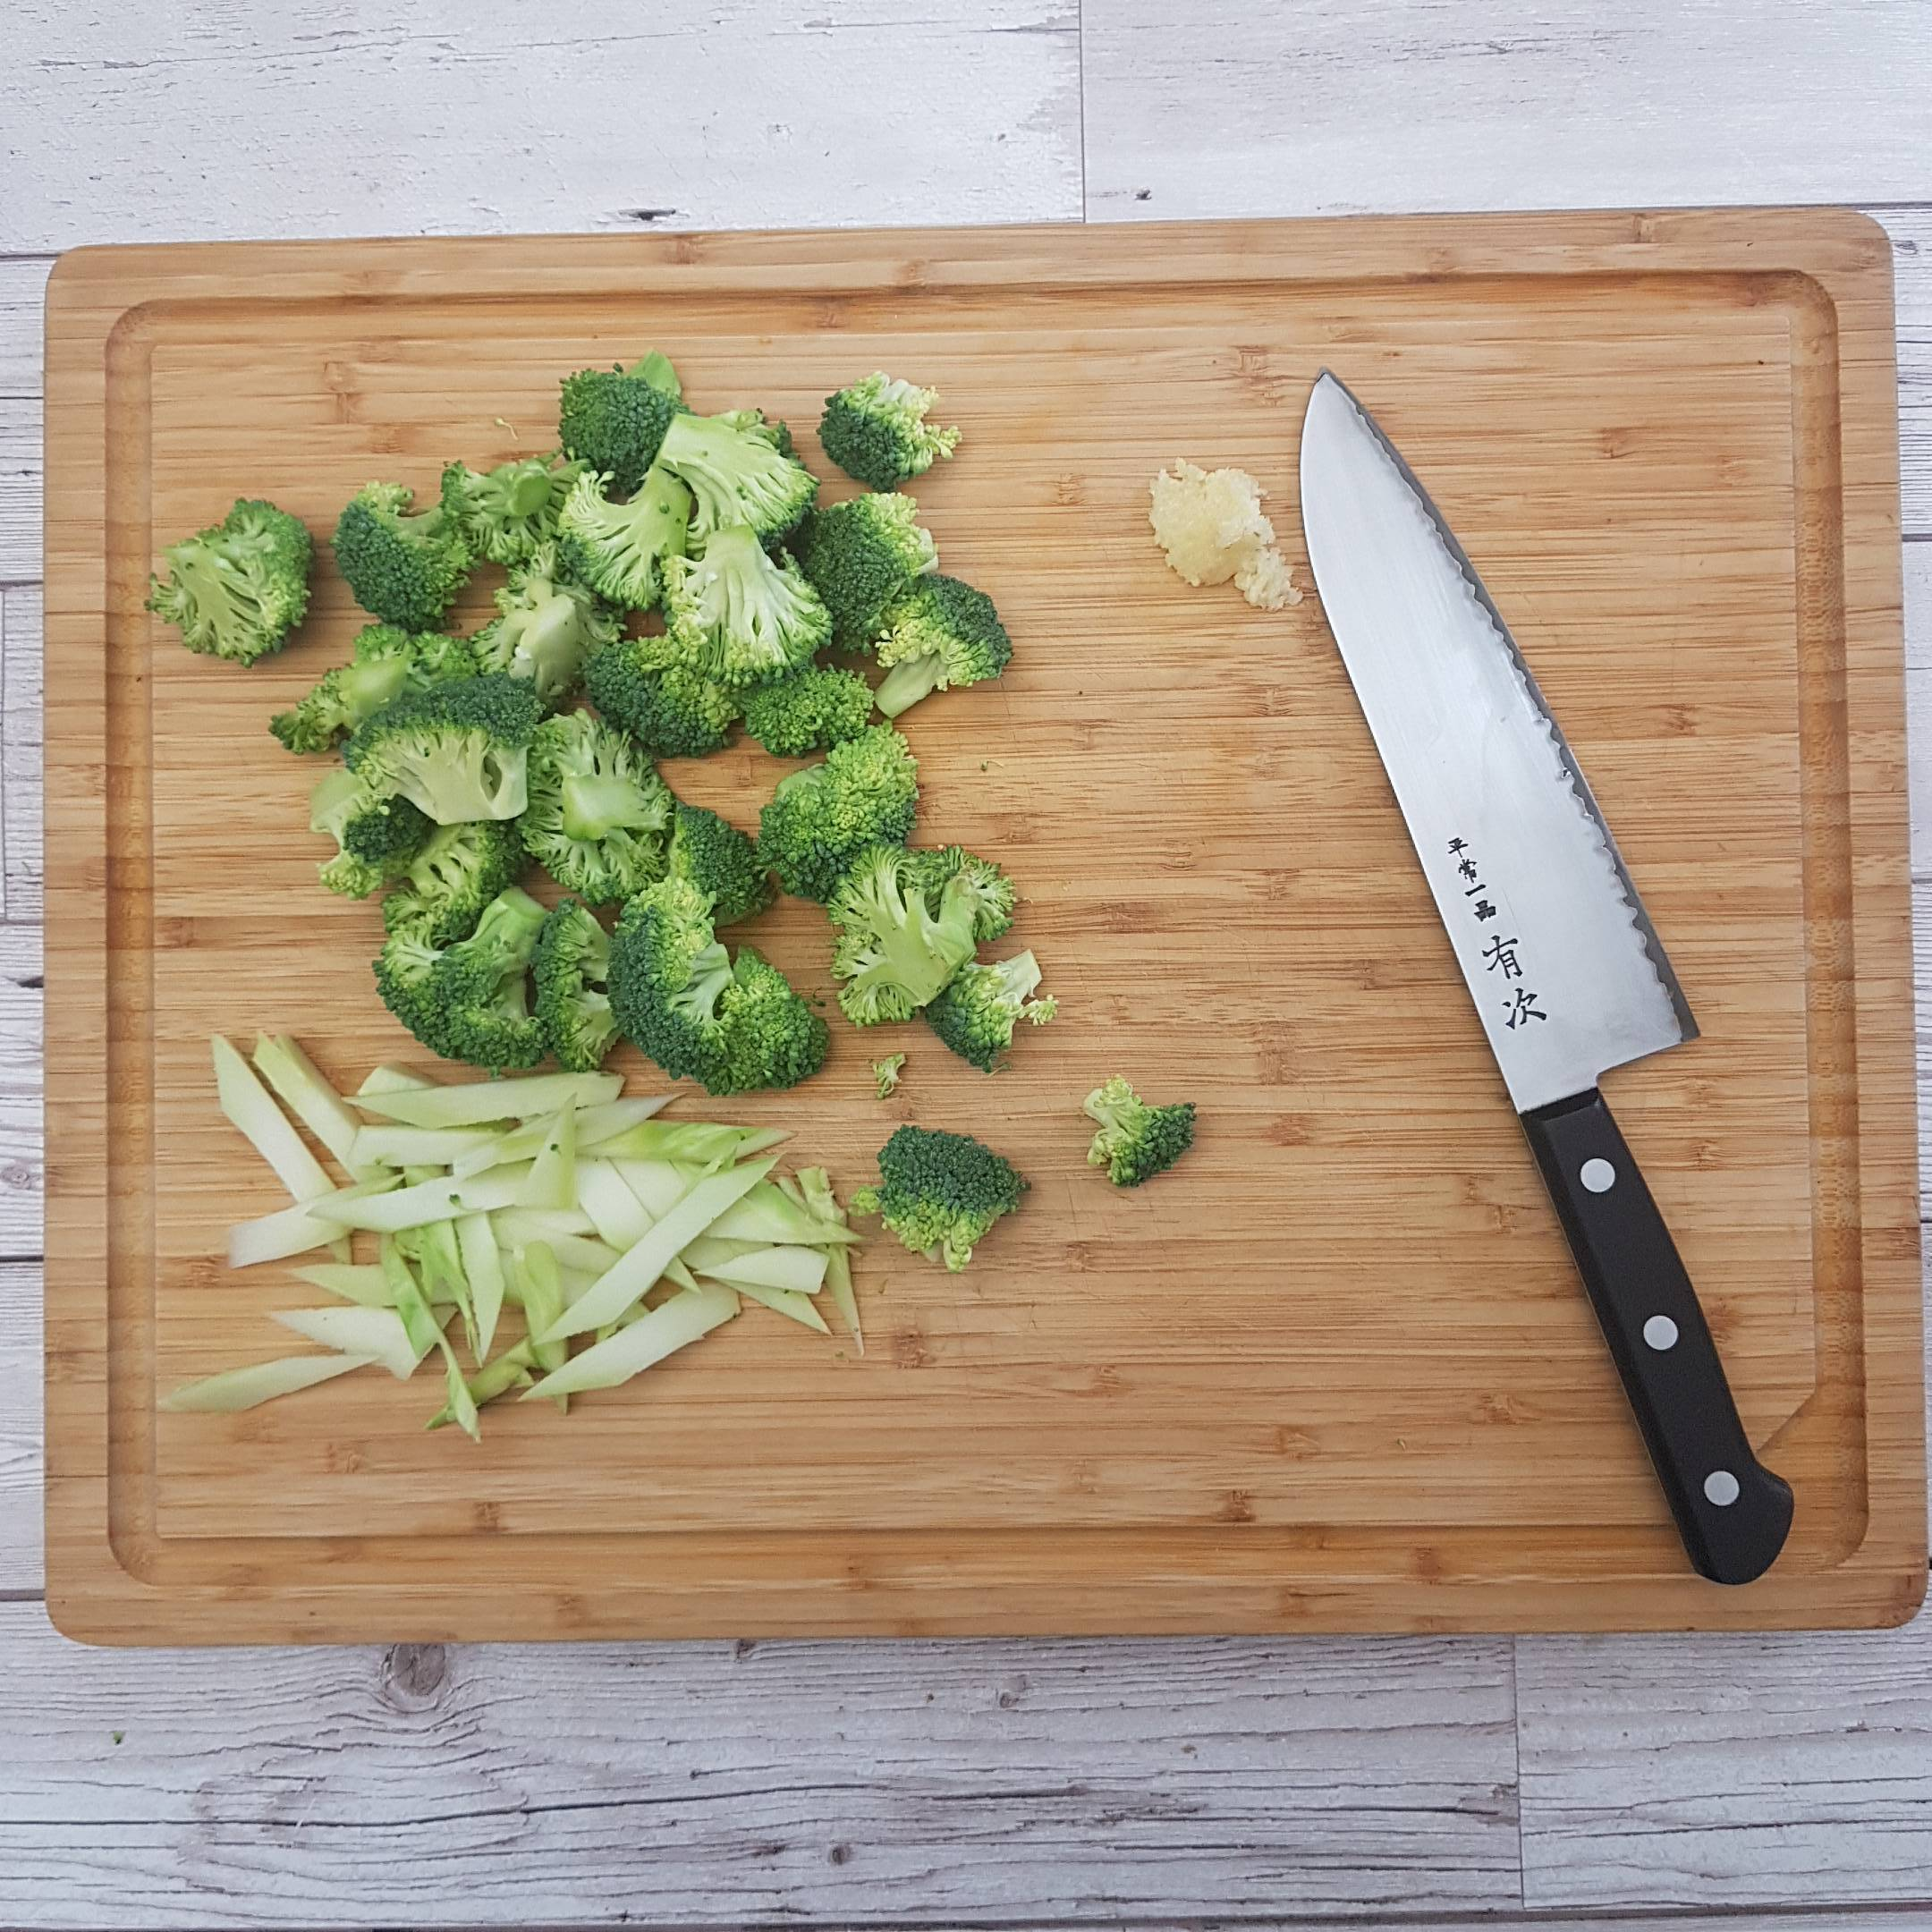 Prep the vegetables. Chop the broccoli into small florets, peel the stem and cut into thin batons. Mince two cloves of garlic.